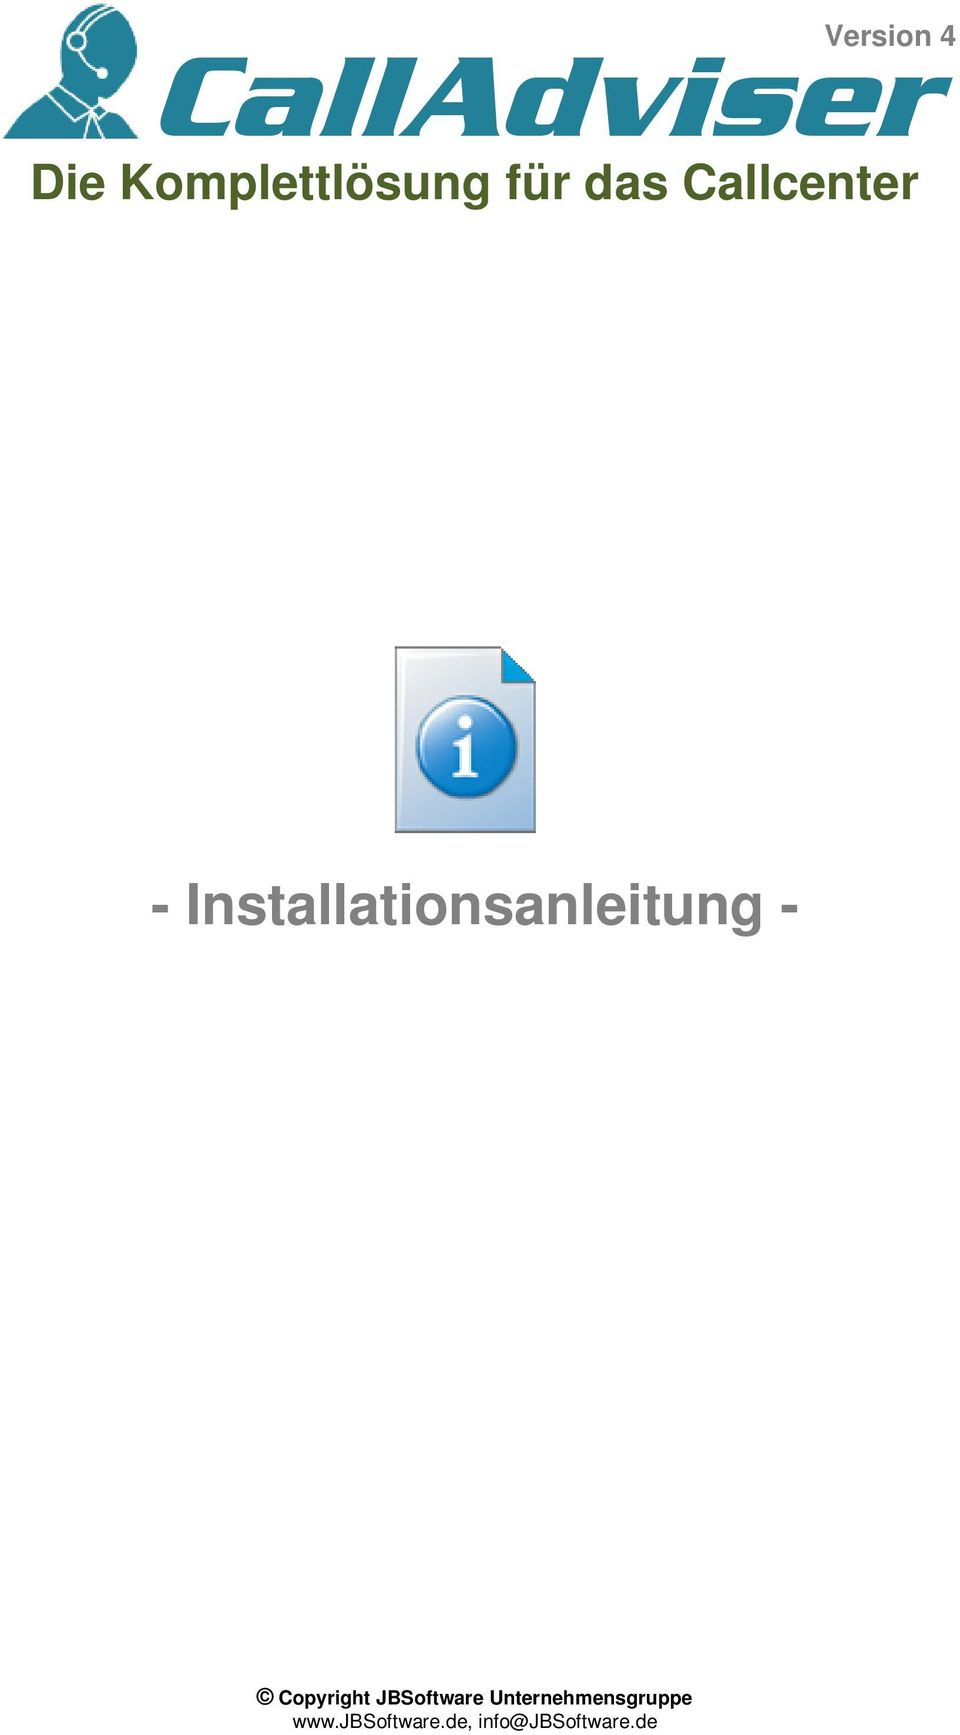 Installationsanleitung - Copyright